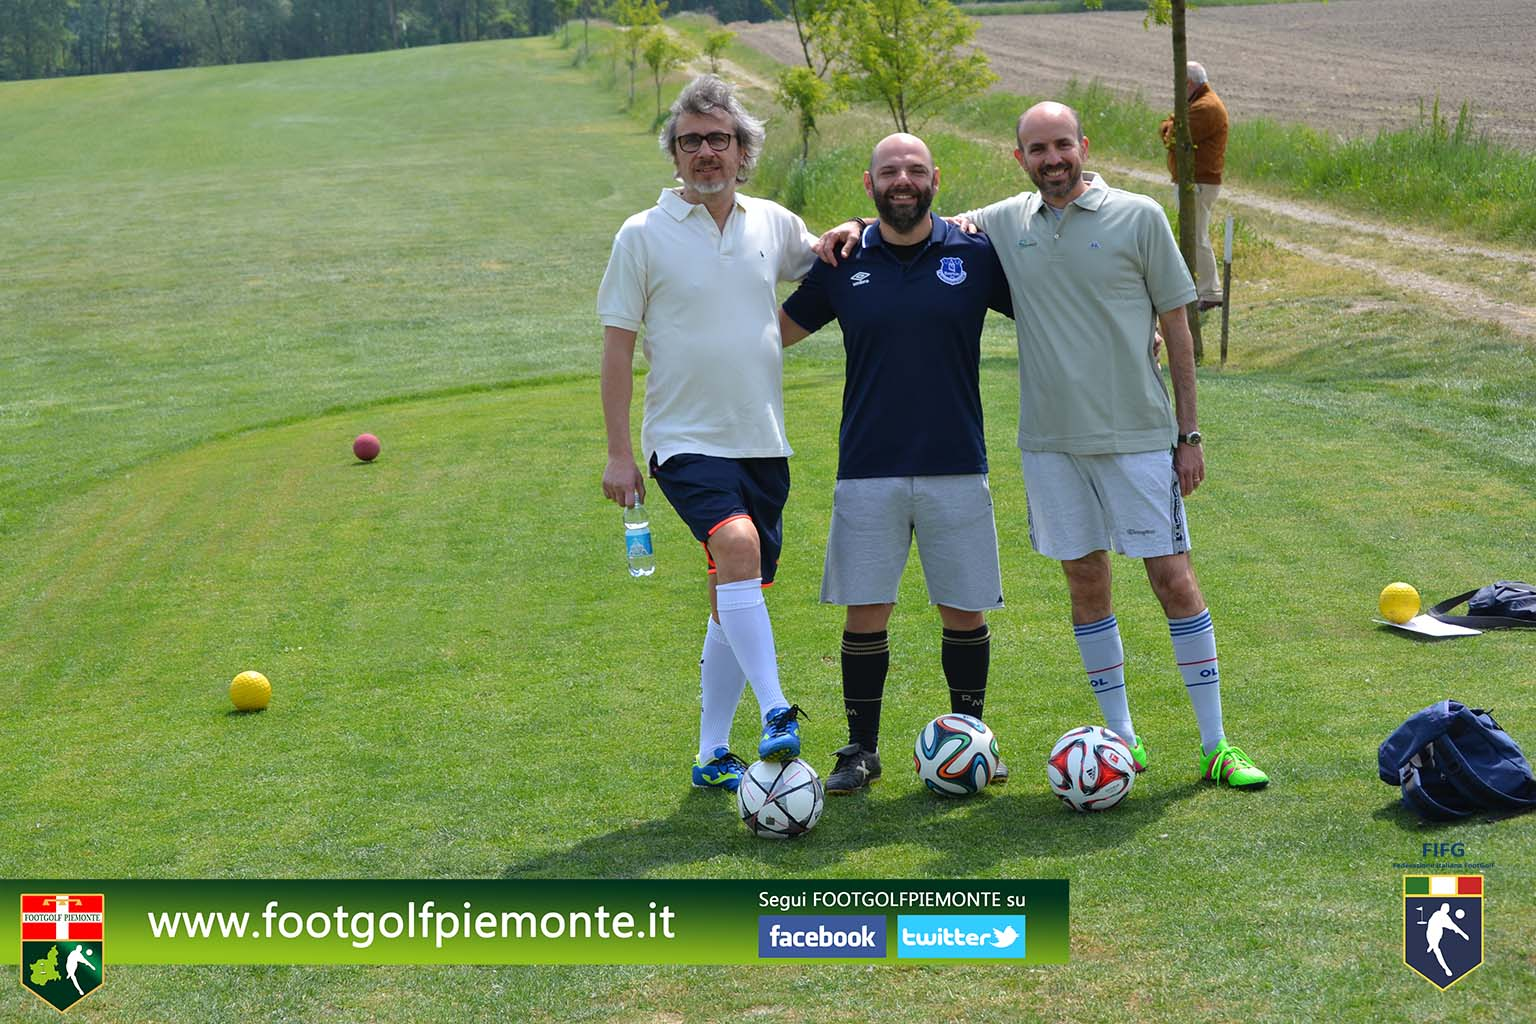 FOTO 9 Regions' Cup Footgolf Piemonte 2016 Golf Città di Asti (At) 30apr16-33